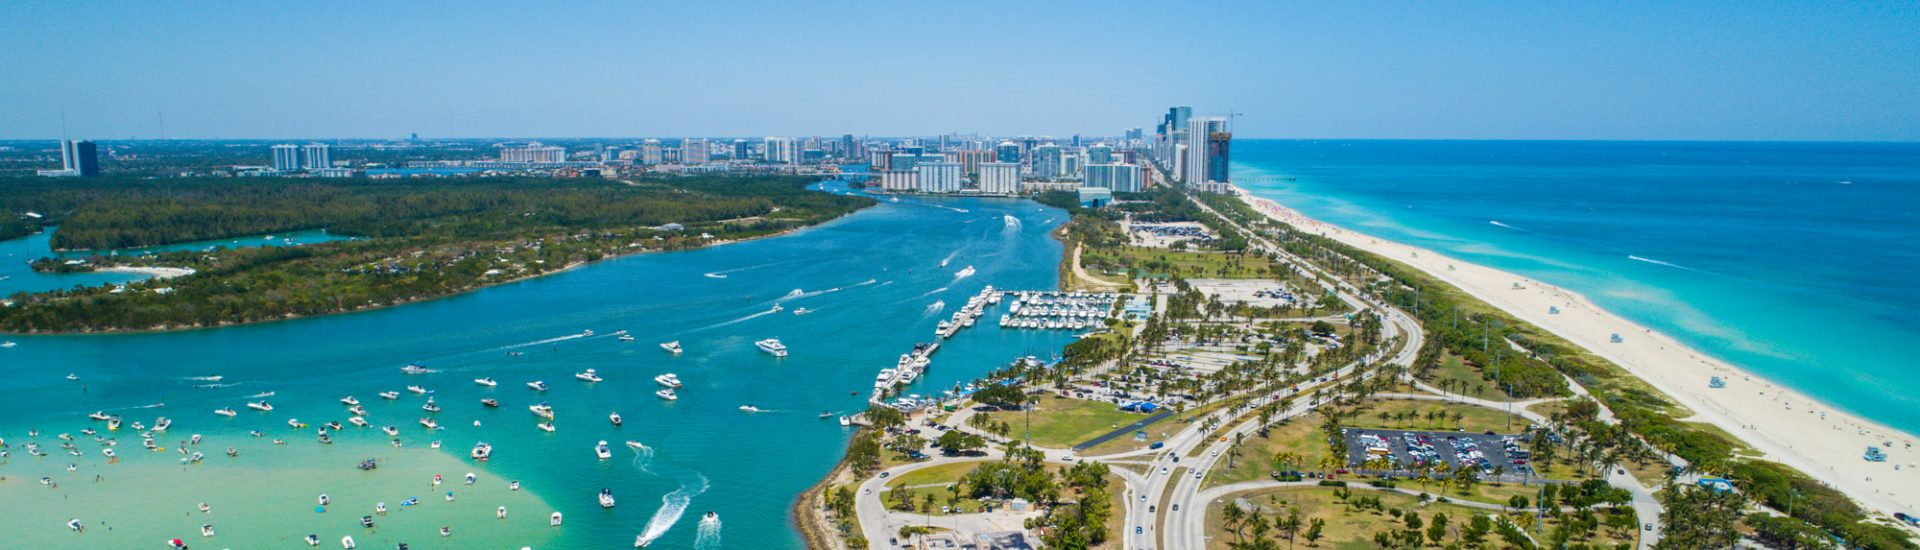 Aerial drone image of Miami Beach Haulover Park. The best day trips from Miami involve flying -- including day trips to Bahamas.